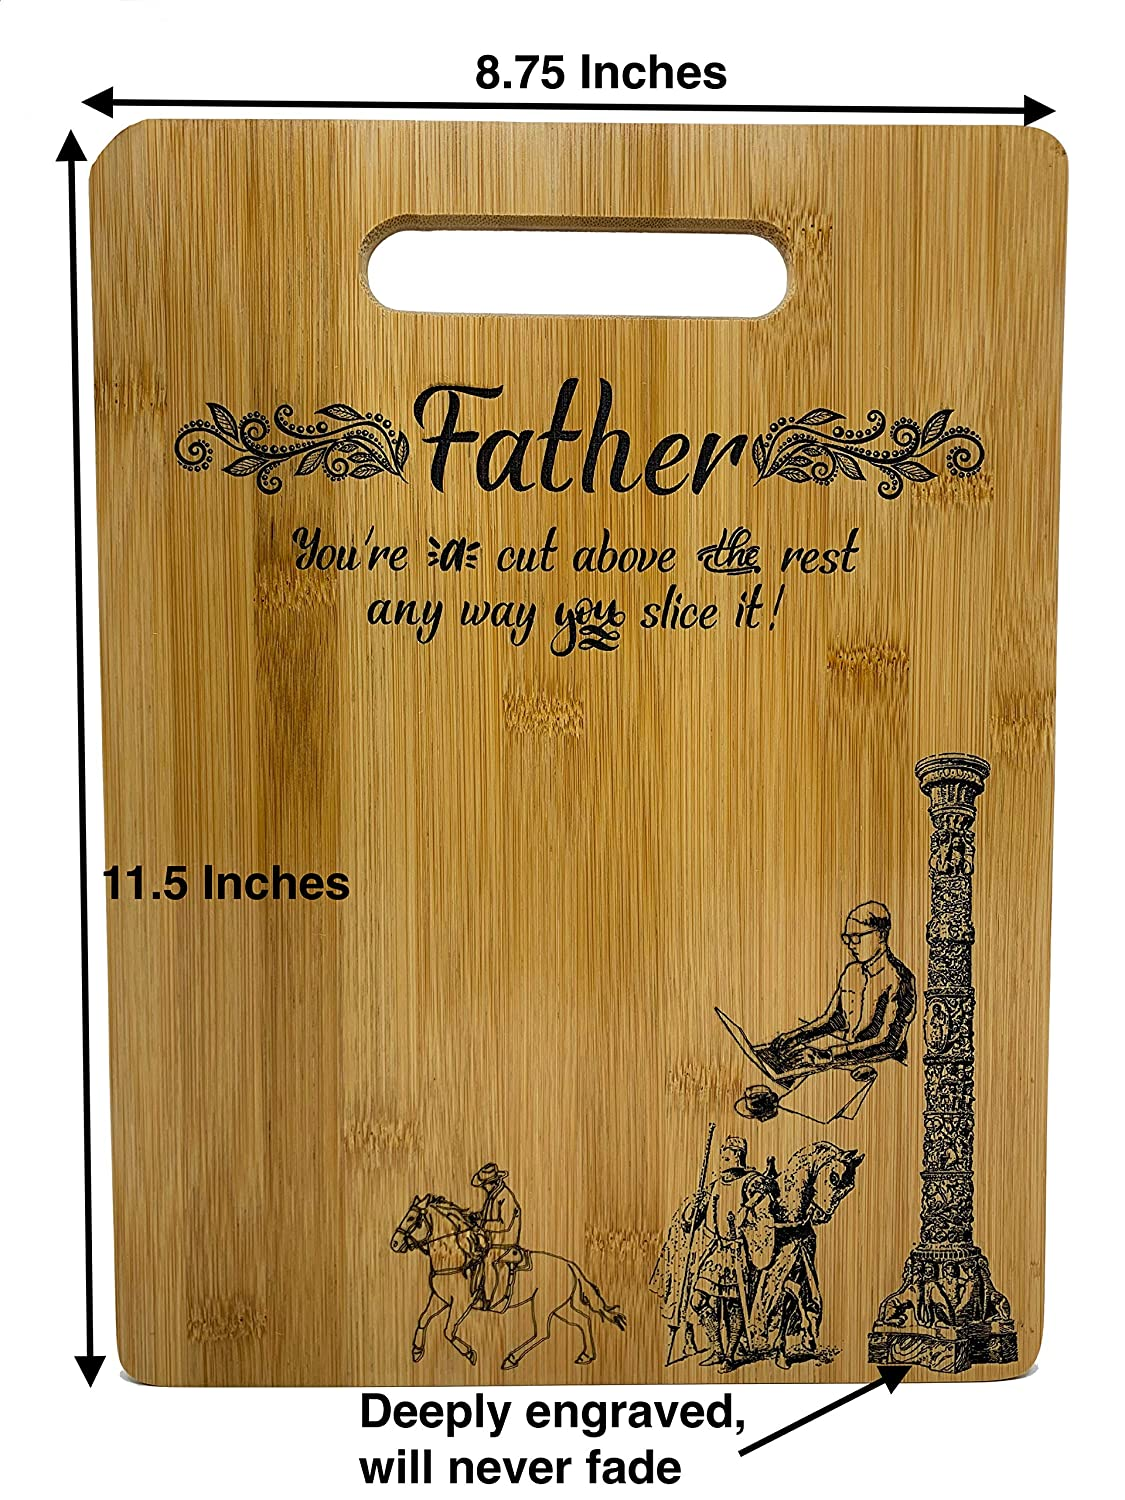 Father Gift 8.75x11.5 Rectangle Bamboo Cutting Board Design Father Gift Fathers Day Gift Birthday Christmas Gift Engraved Side For D/écor Hanging Reverse Side For Usage